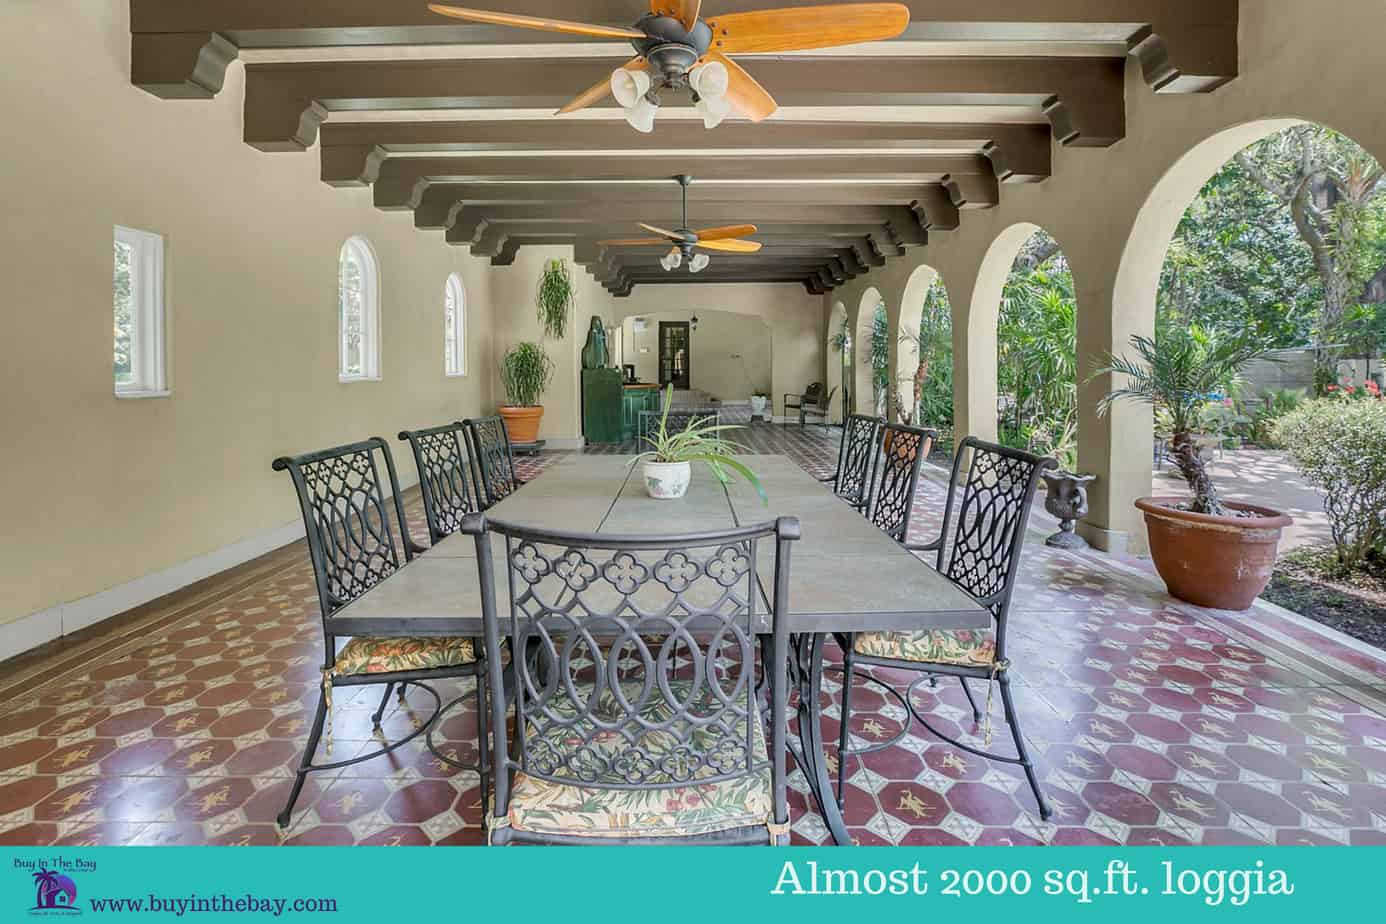 Loggia with beamed ceilings, red mosaic tile, five arched doors, and outdoor table for the home for sale at 4024 W Bay to Bay Blvd Tampa FL 33629. A perfect Example of a Historic Homes in Florida and a Tampa Bay Luxury Homes For sale.